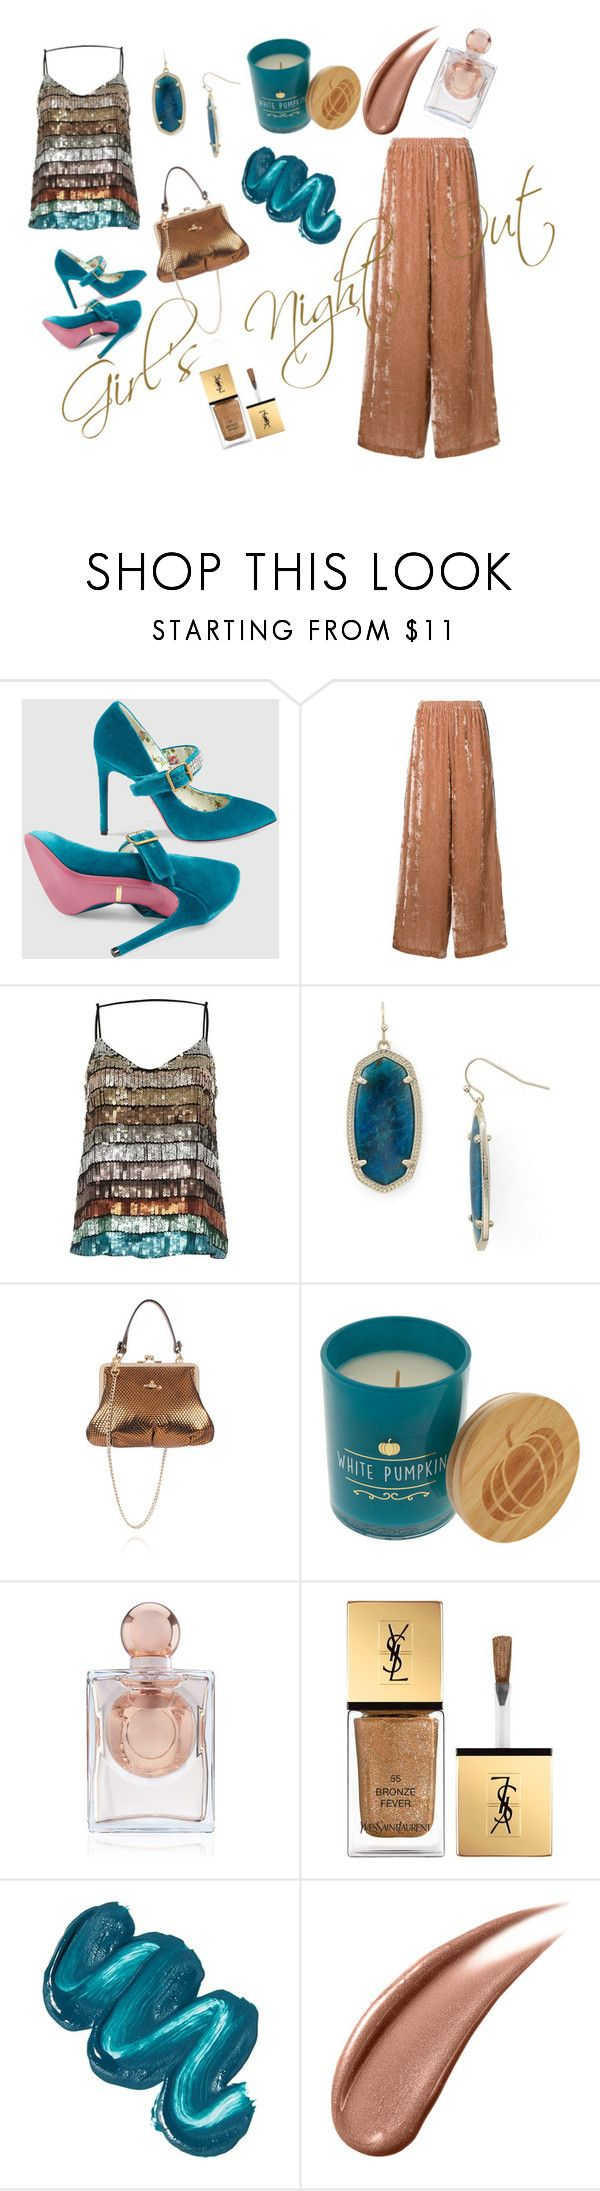 """""""Girl's Night Out"""" by pbeer on Polyvore featuring Gucci, Aula, River Island, Kendra Scott, Vivienne Westwood, La Perla, Yves Saint Laurent and Mermaid Salon"""